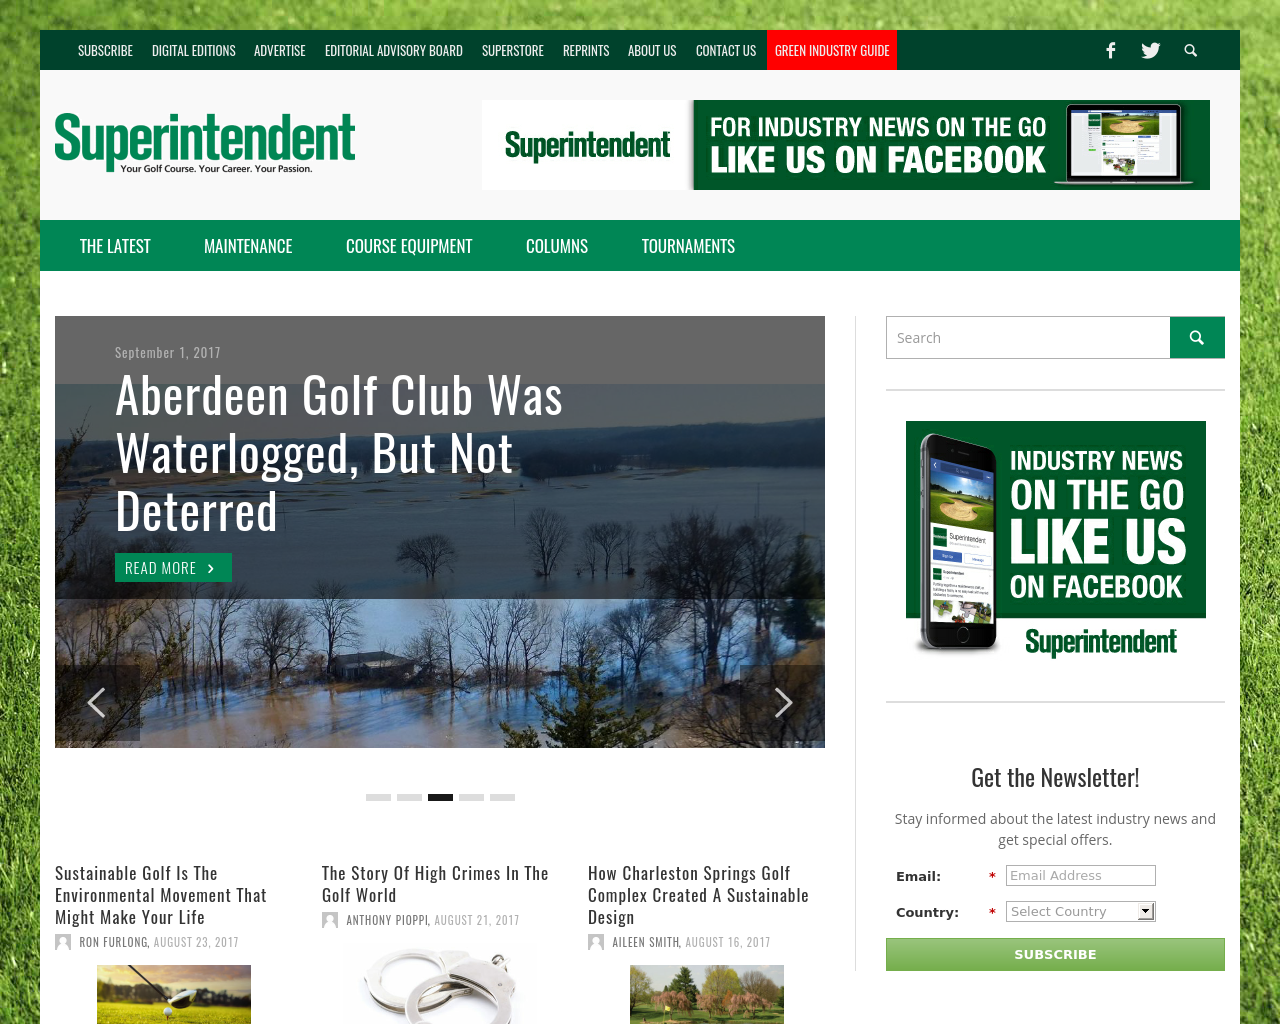 Superintendent-Magazine-Advertising-Reviews-Pricing